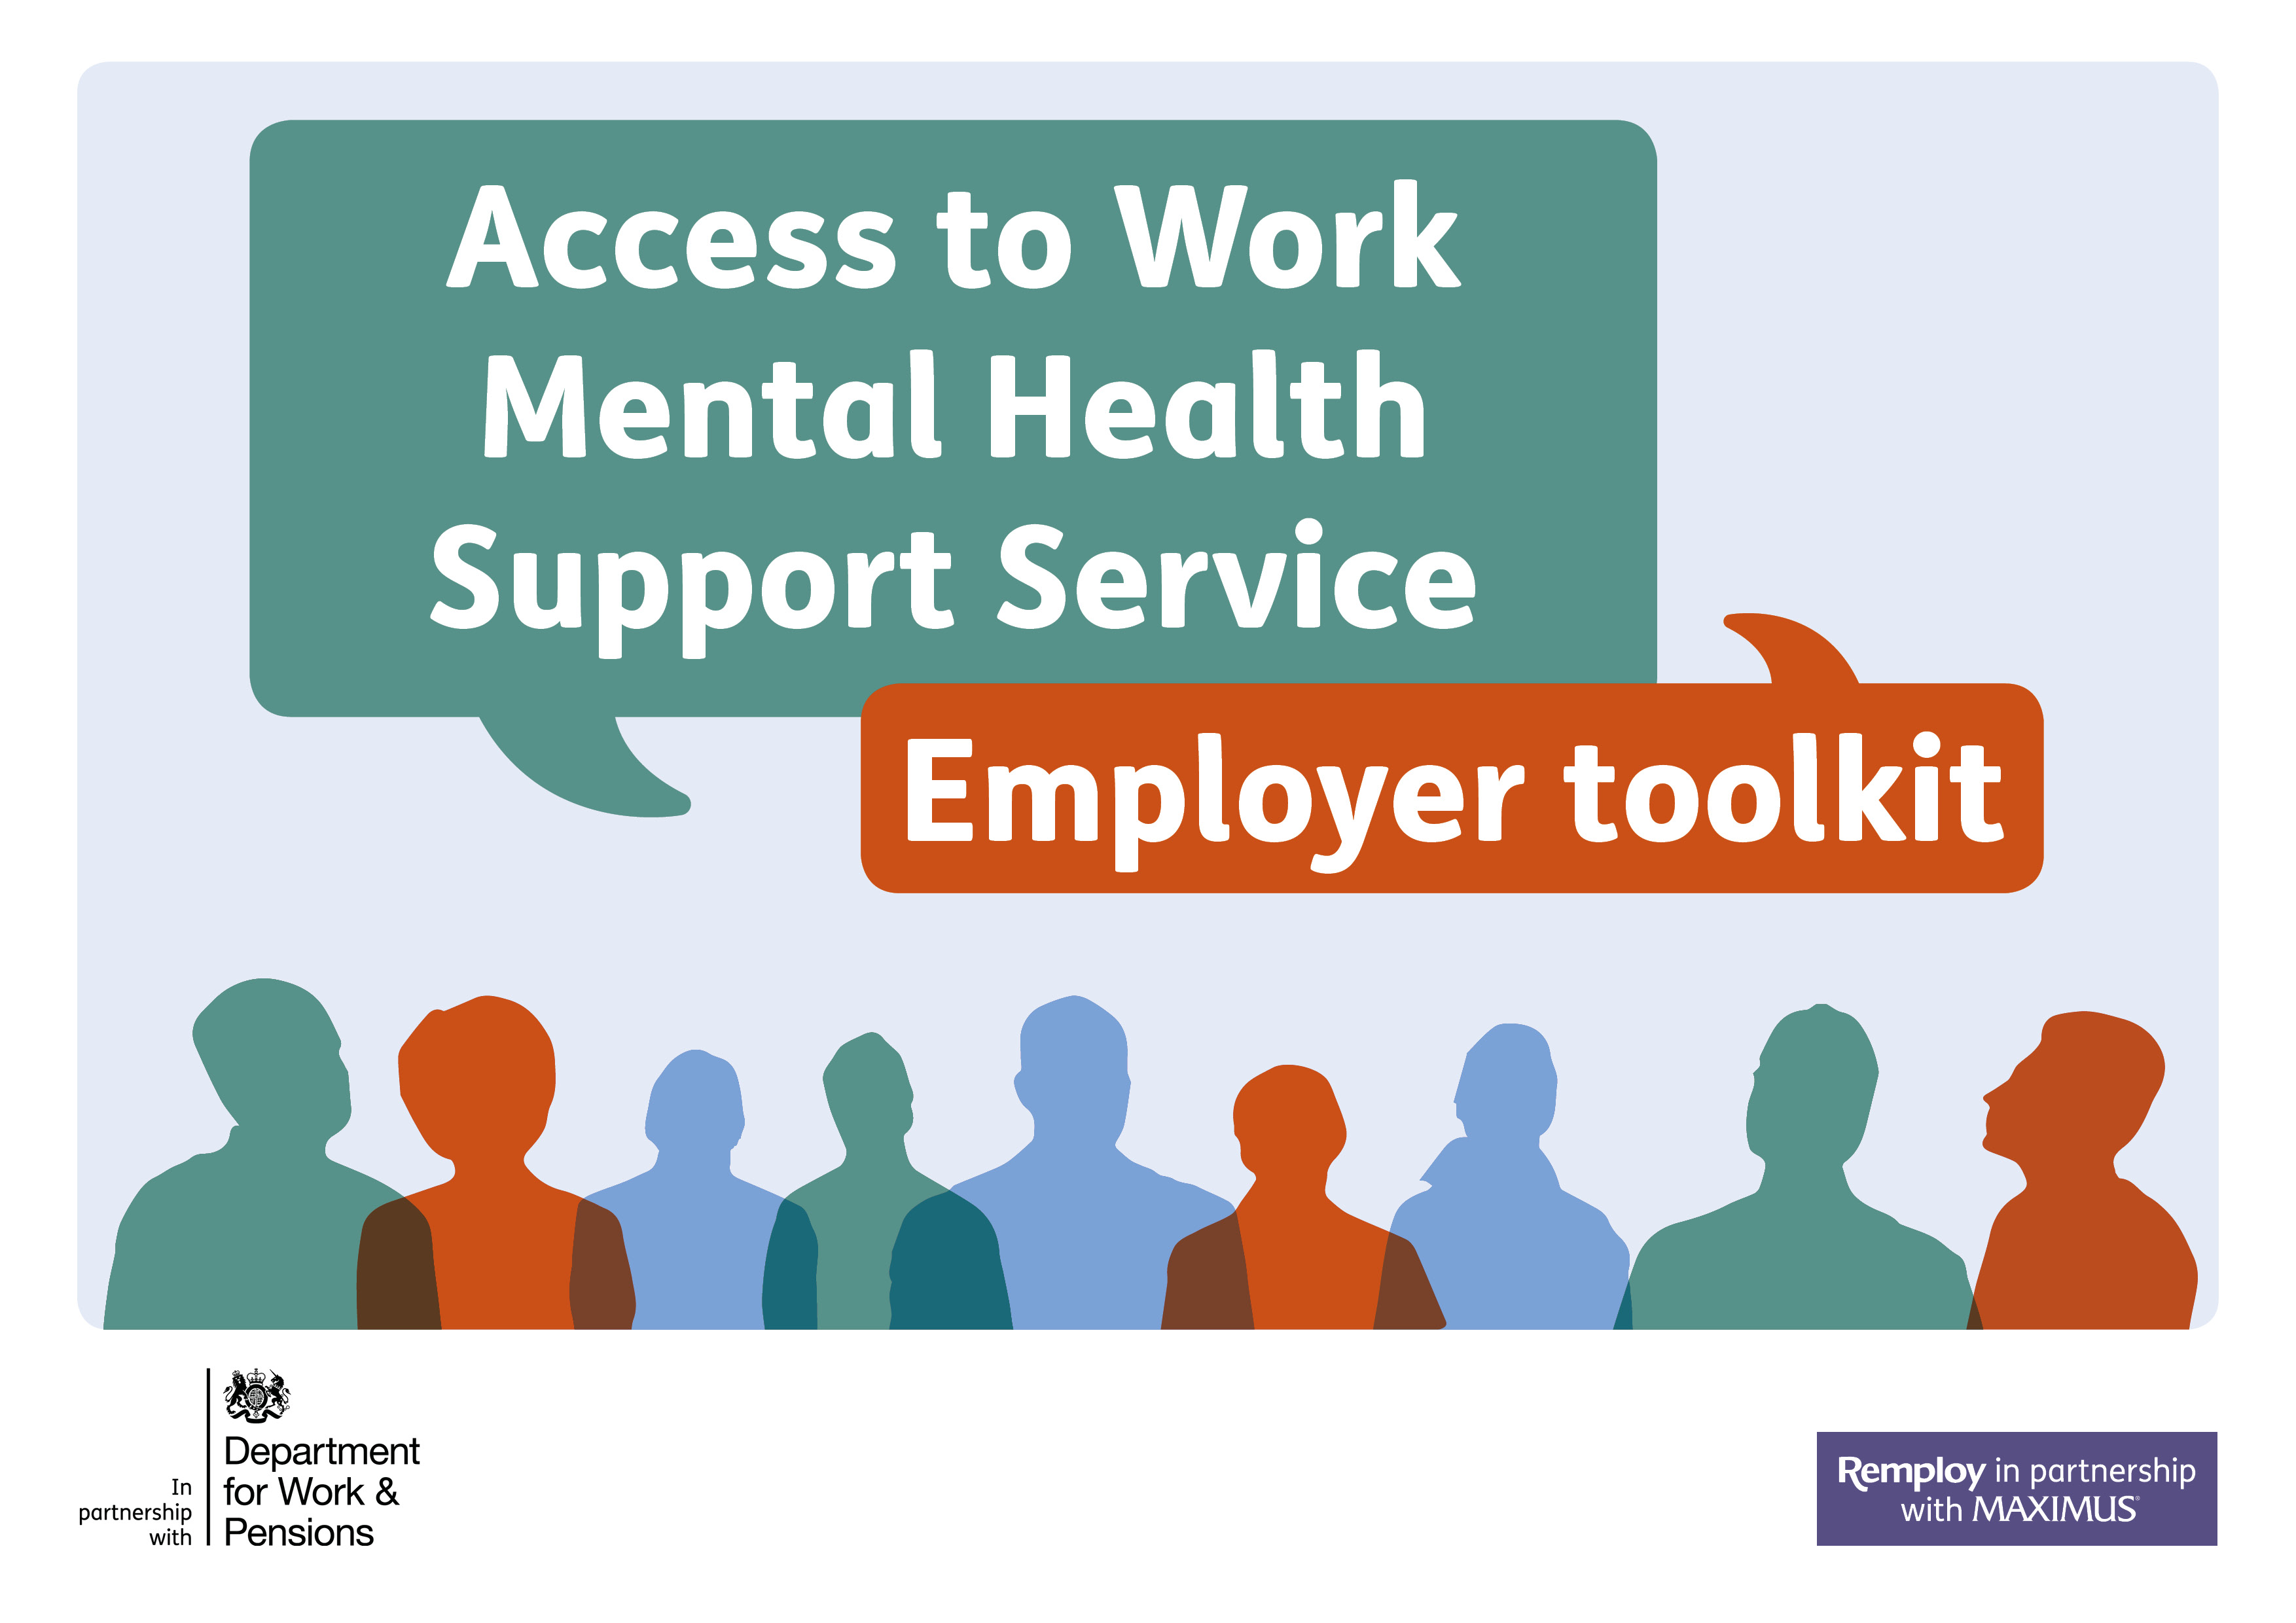 Access to Work Mental Health Support Service Employer Toolkit